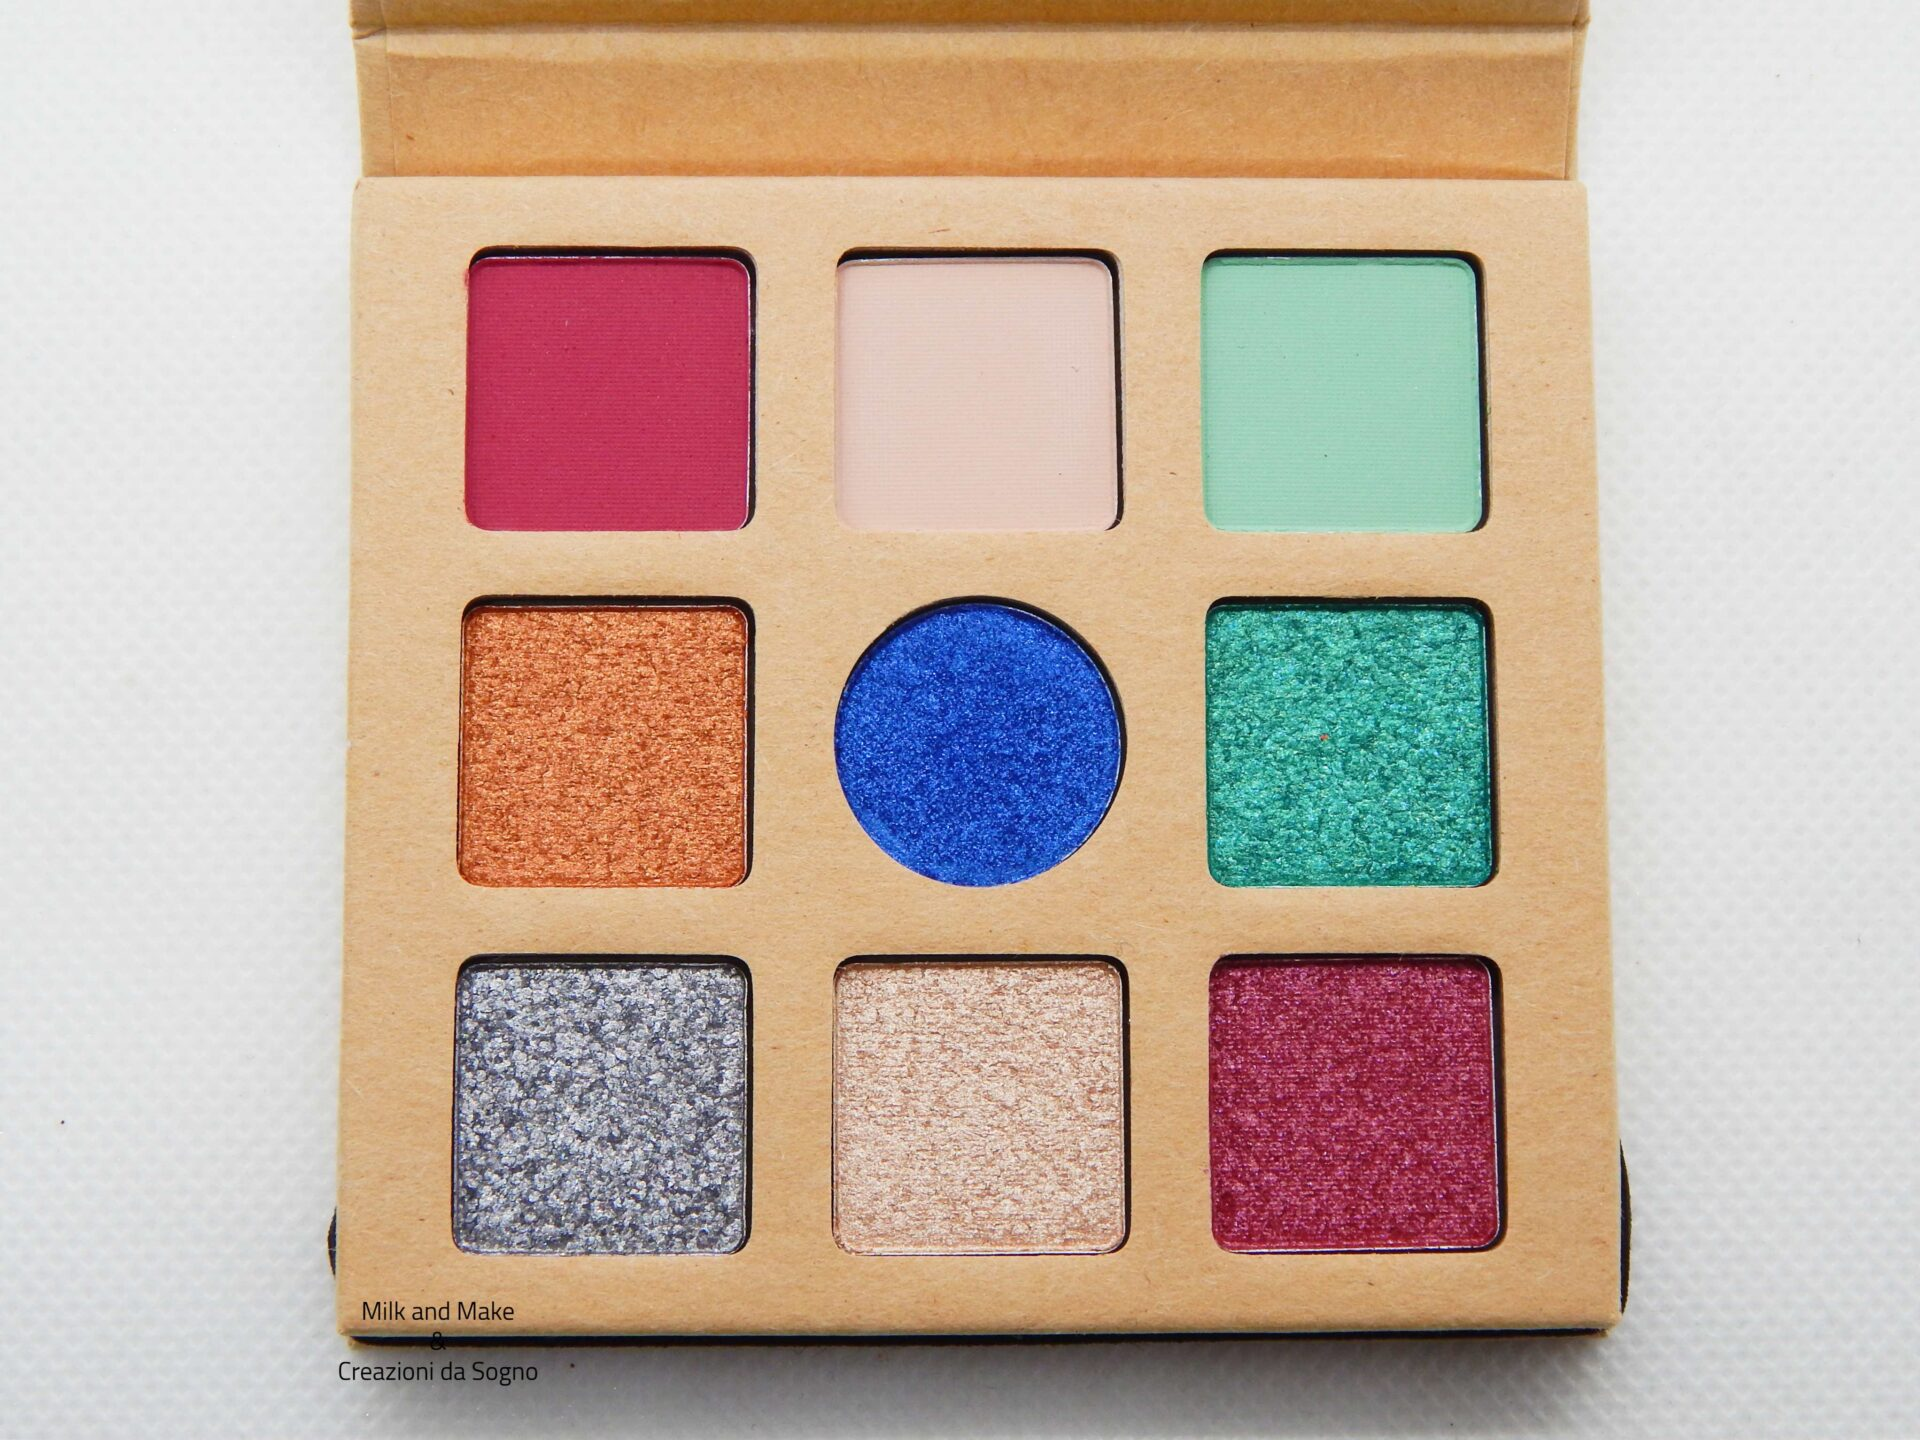 Daily Dose of Power Eyeshadow Palette Essence Cosmetics - Recensione